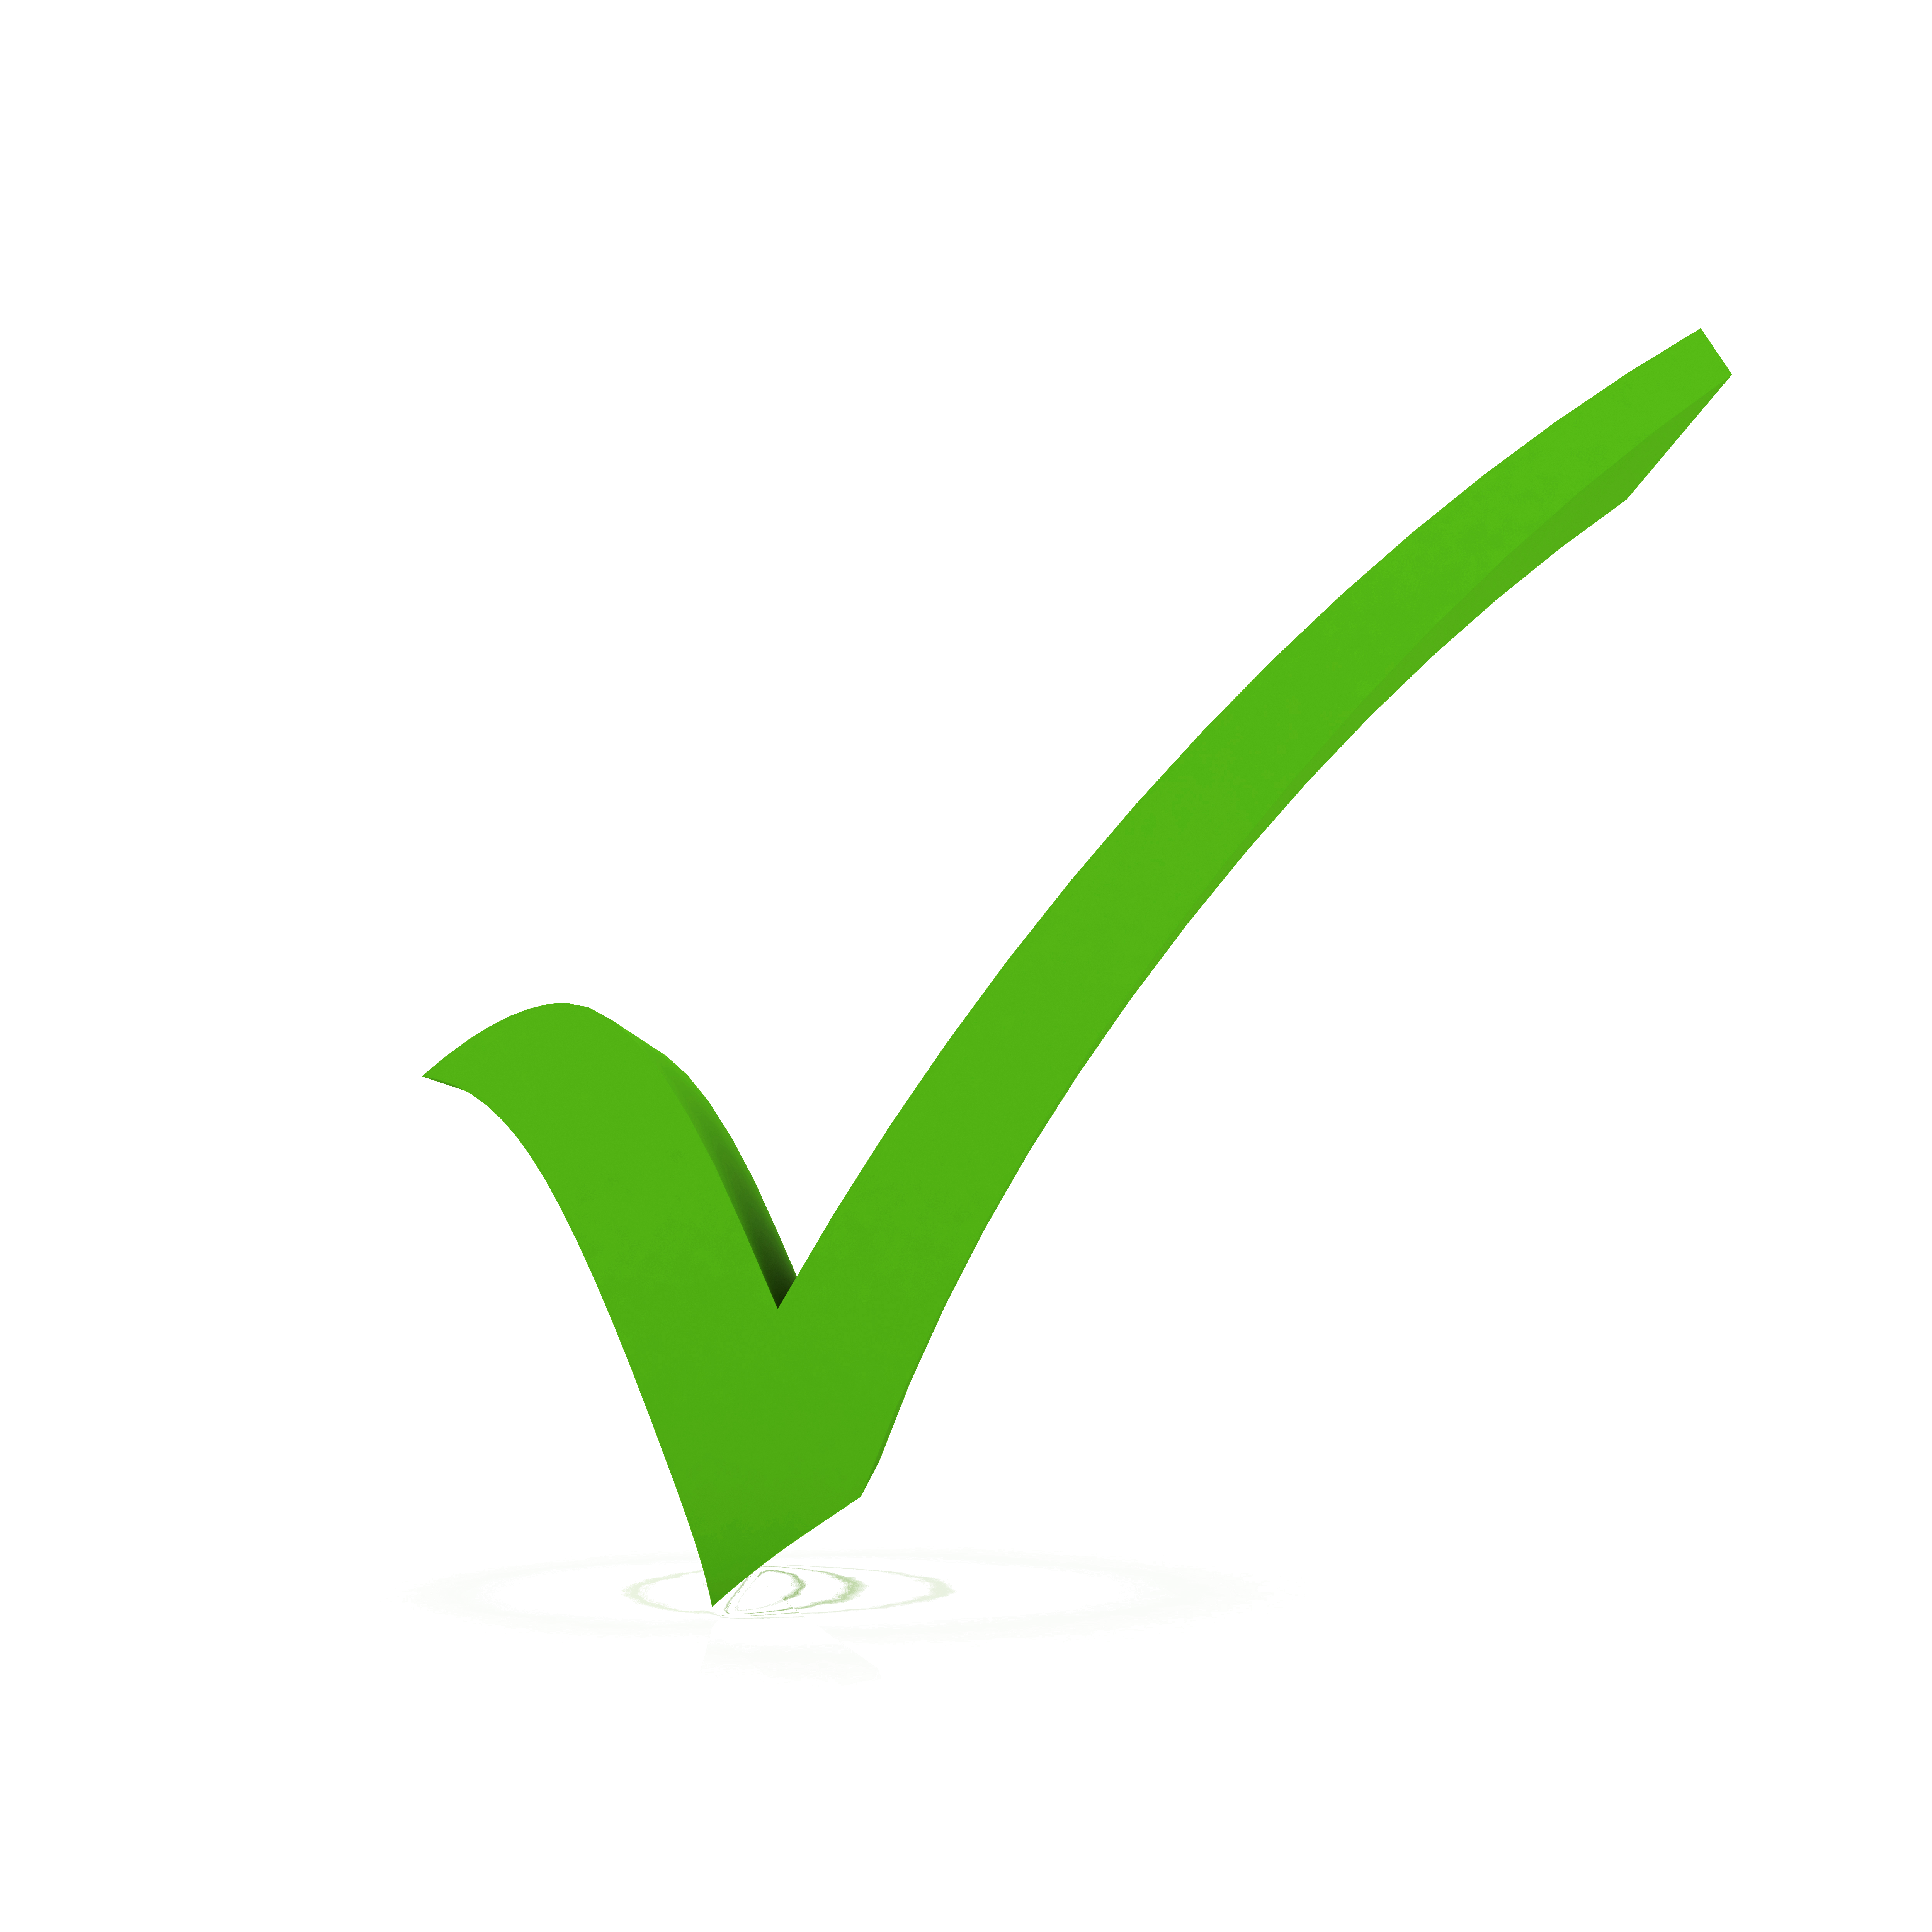 Clipart Check Mark Png.